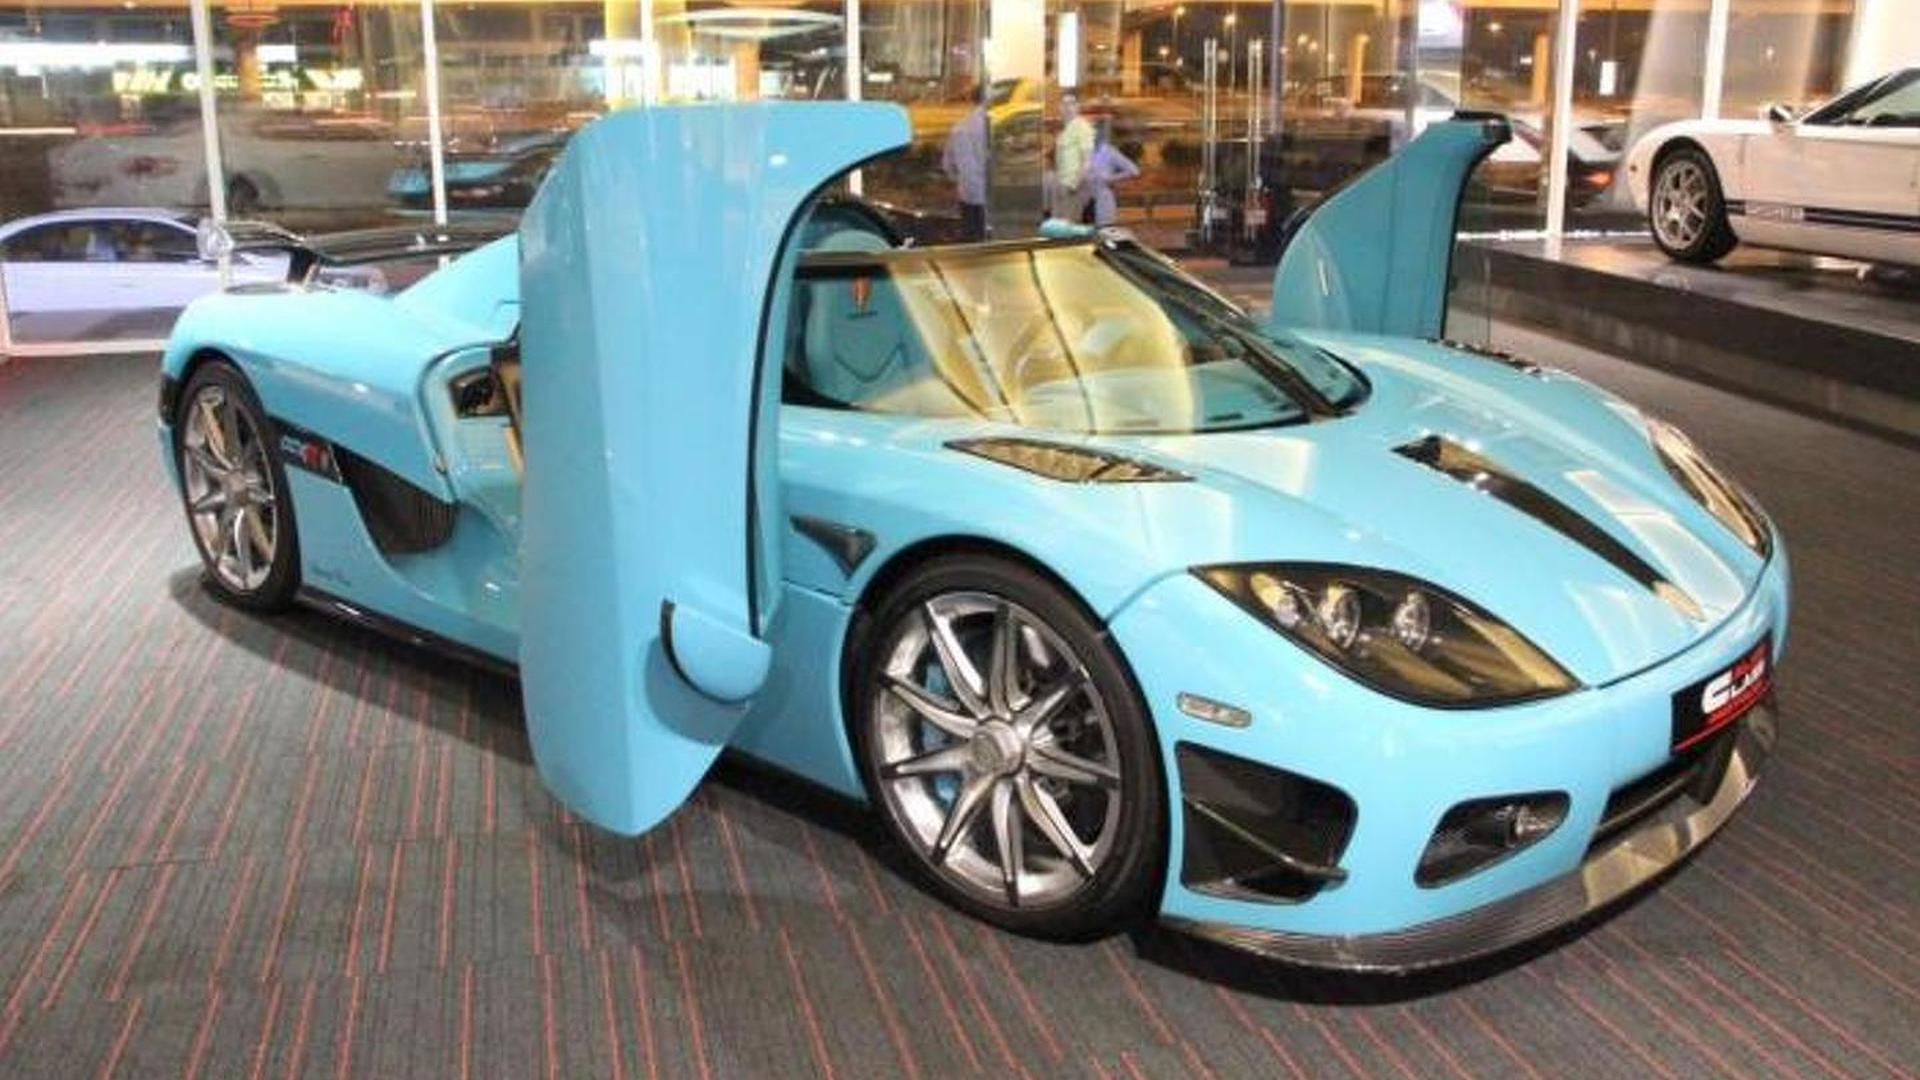 One Off Turquoise Koenigsegg Ccxr For Sale In Dubai